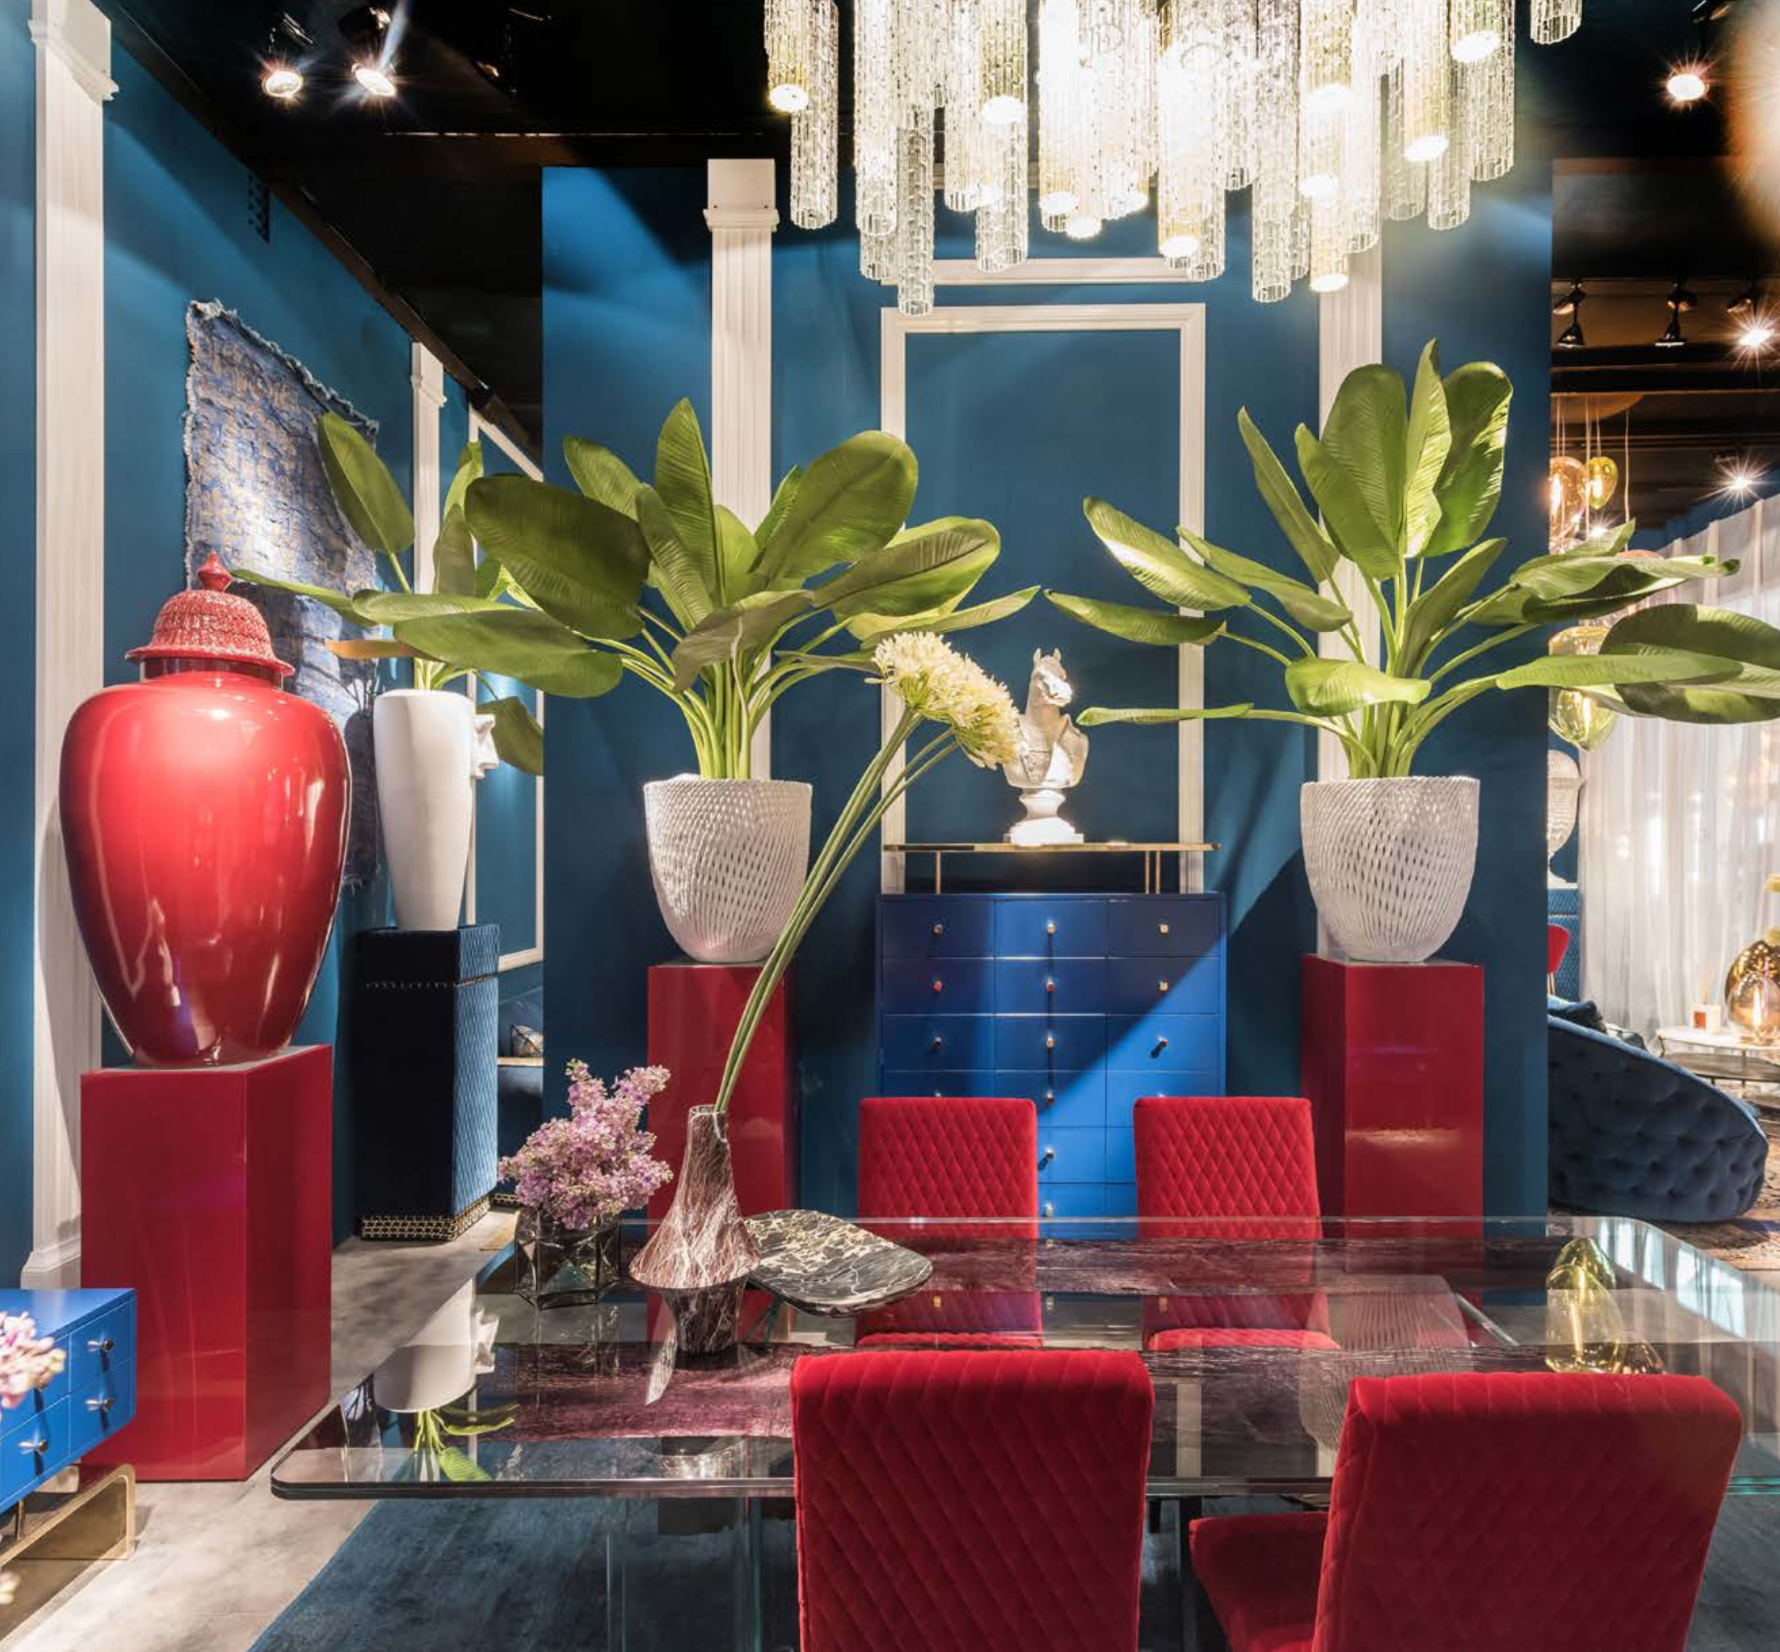 VG New Trend stand at Salone del Mobile 2018 with trendy red and blue - Masha Shapiro Agency UK.png